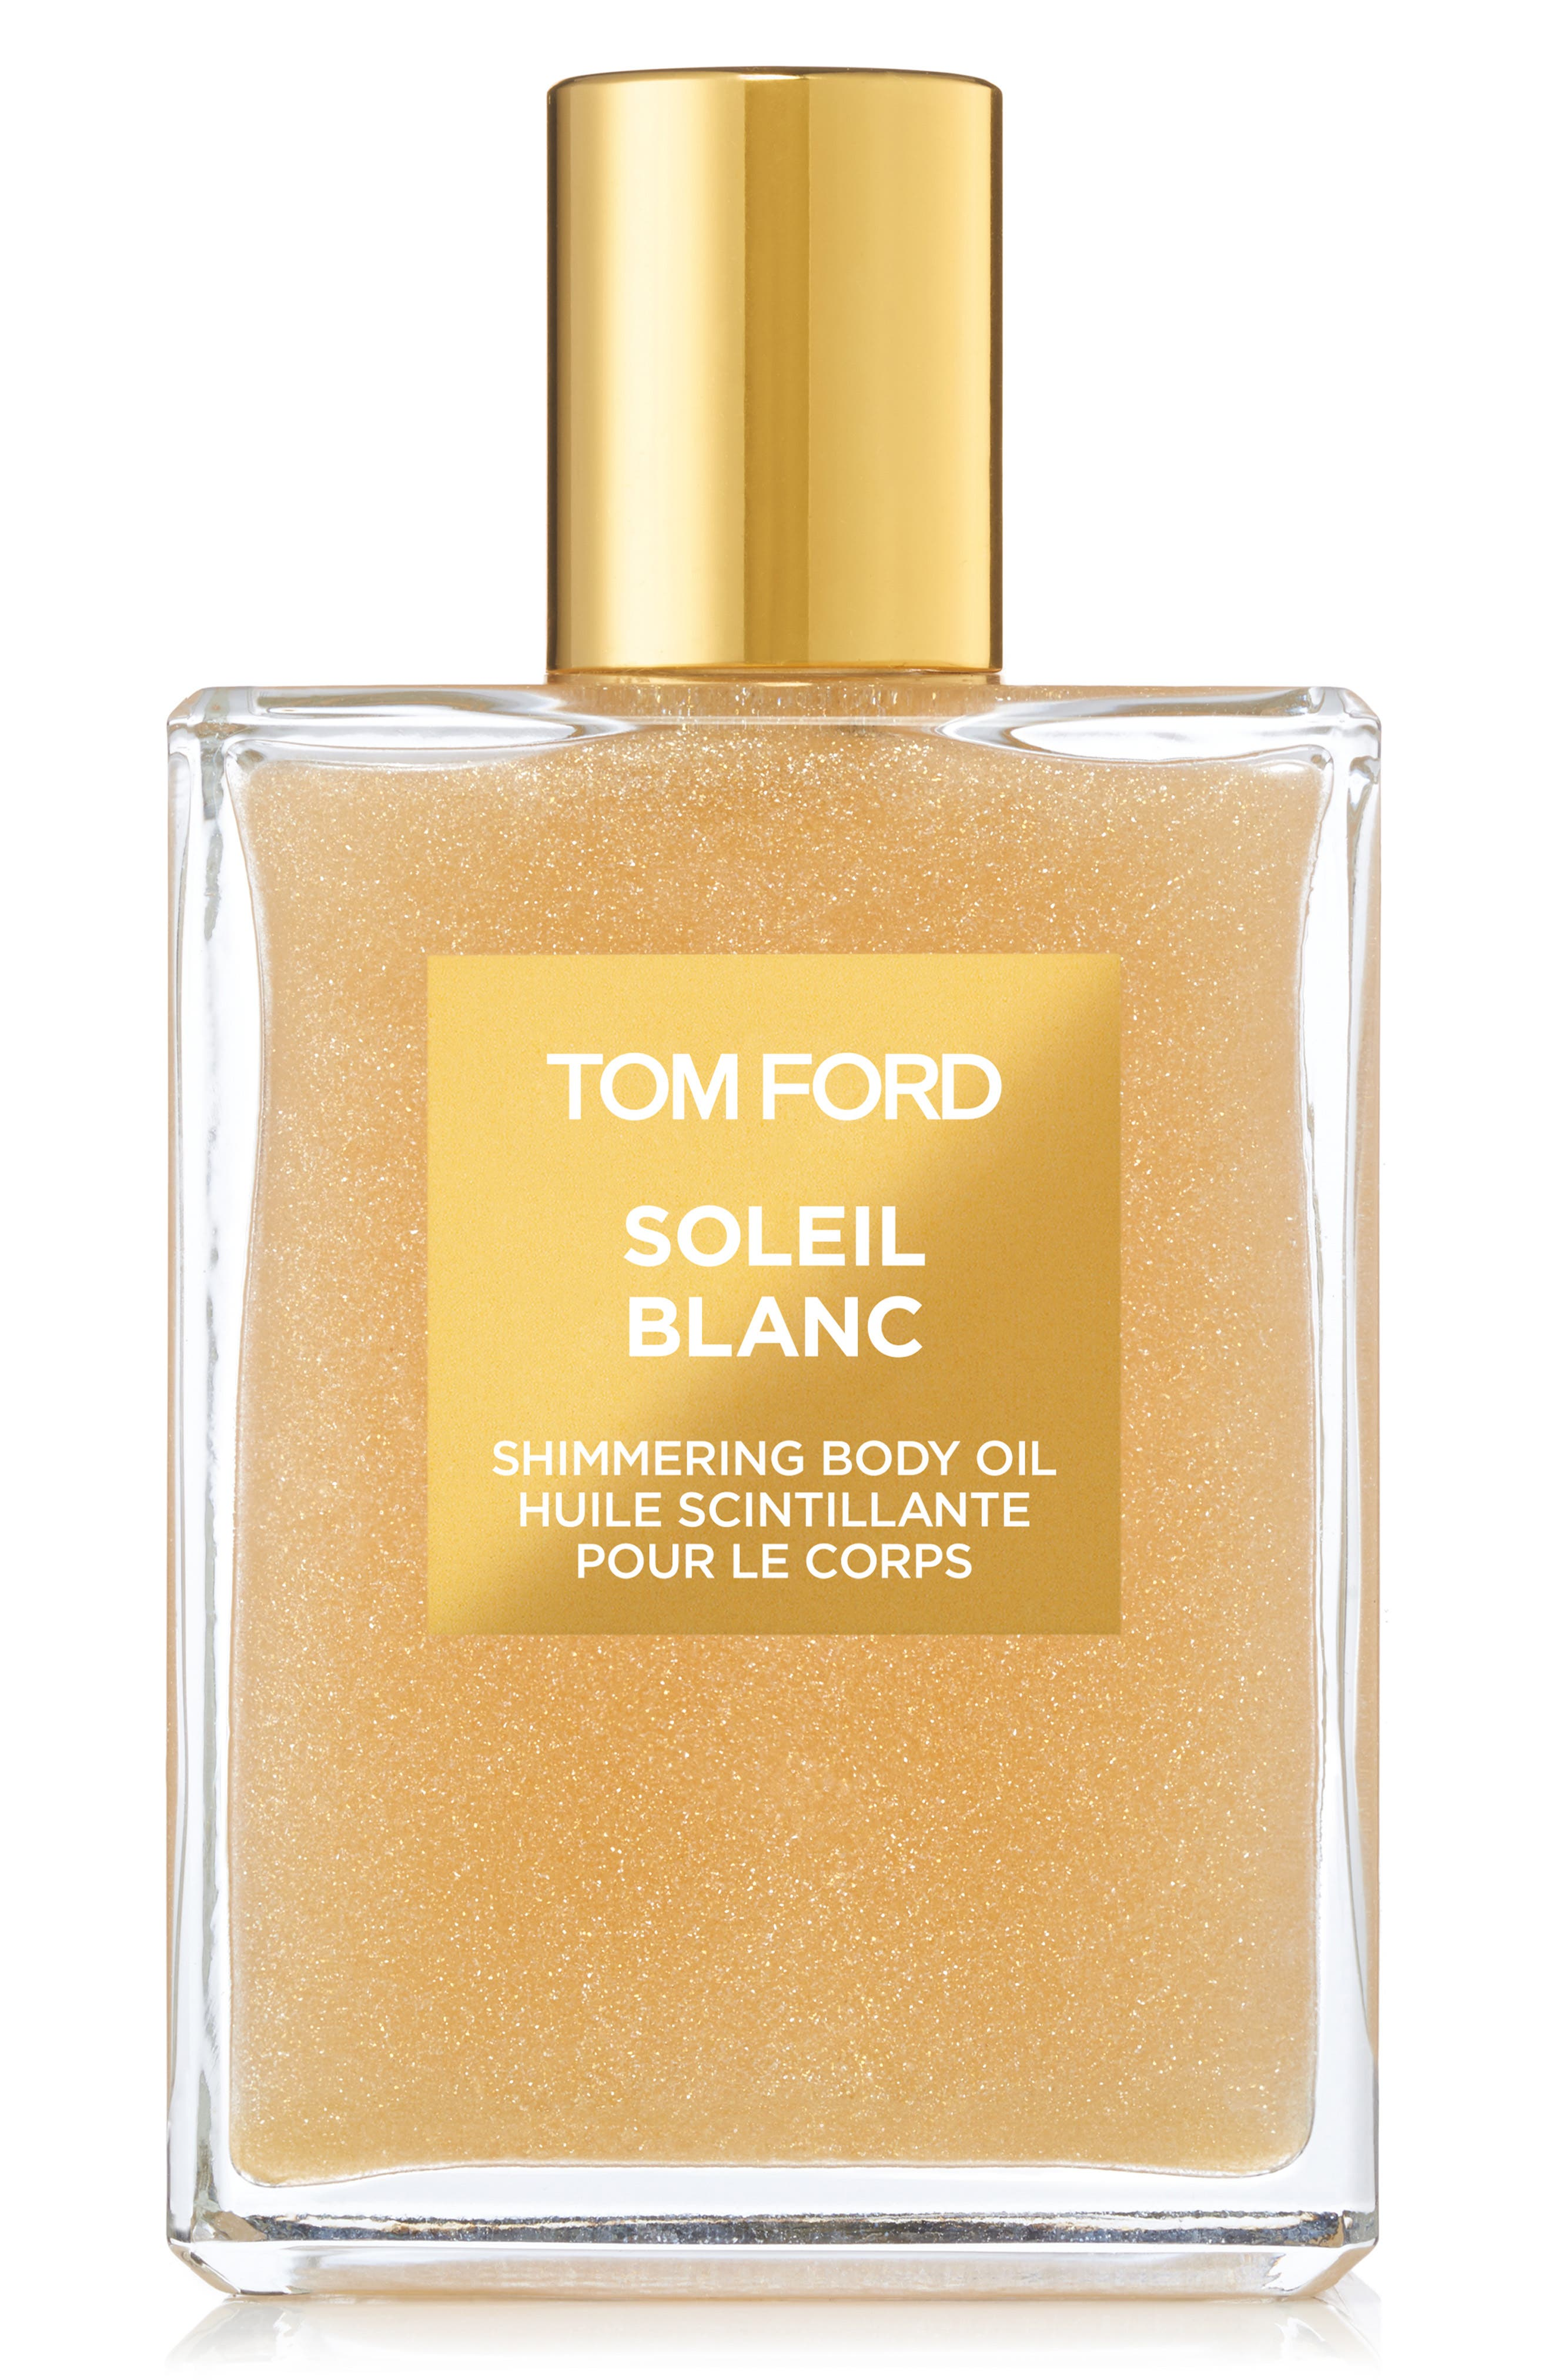 TOM FORD, Soleil Blanc Shimmering Body Oil, Main thumbnail 1, color, GOLD